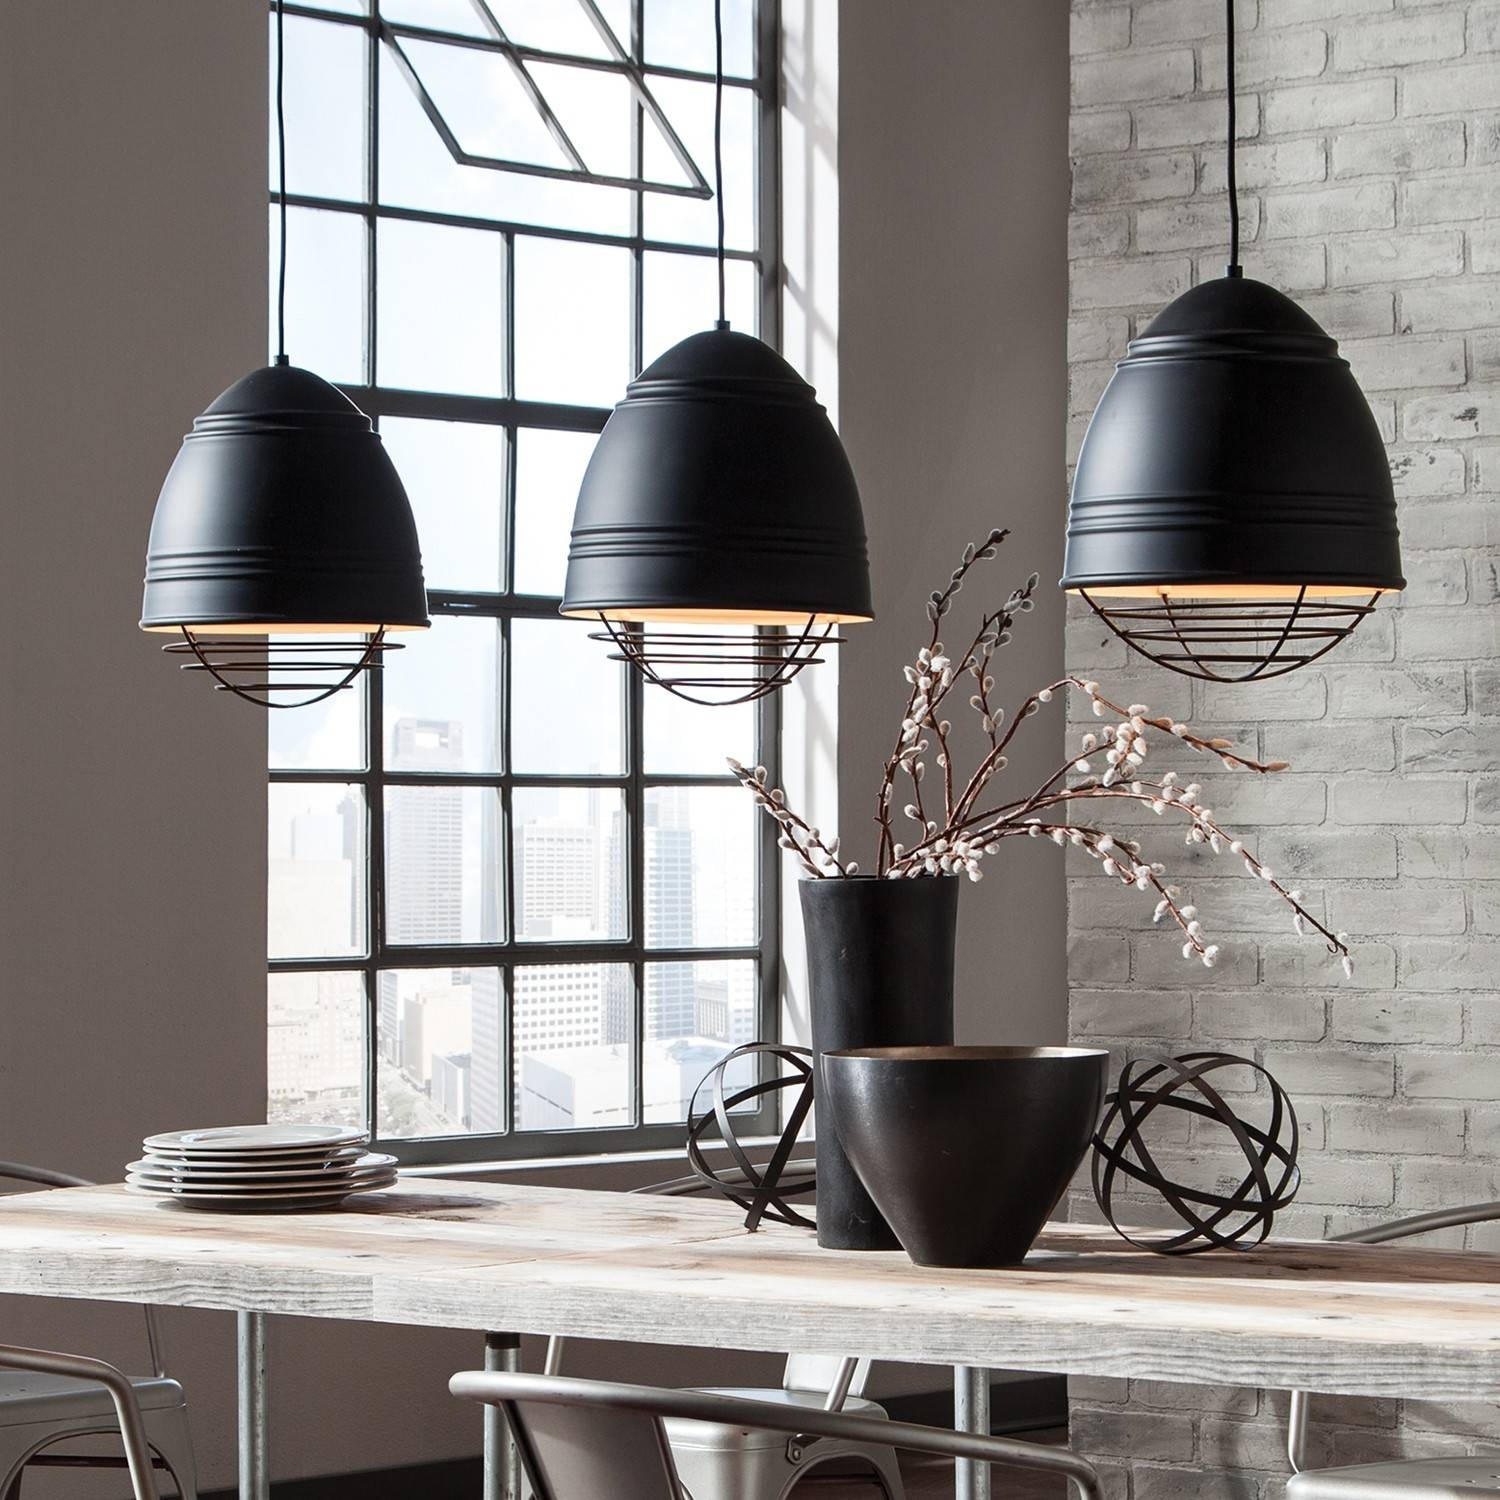 Pendant Lights For A Kitchen Island | Design Necessities Lighting Throughout Oversized Pendants (View 12 of 15)